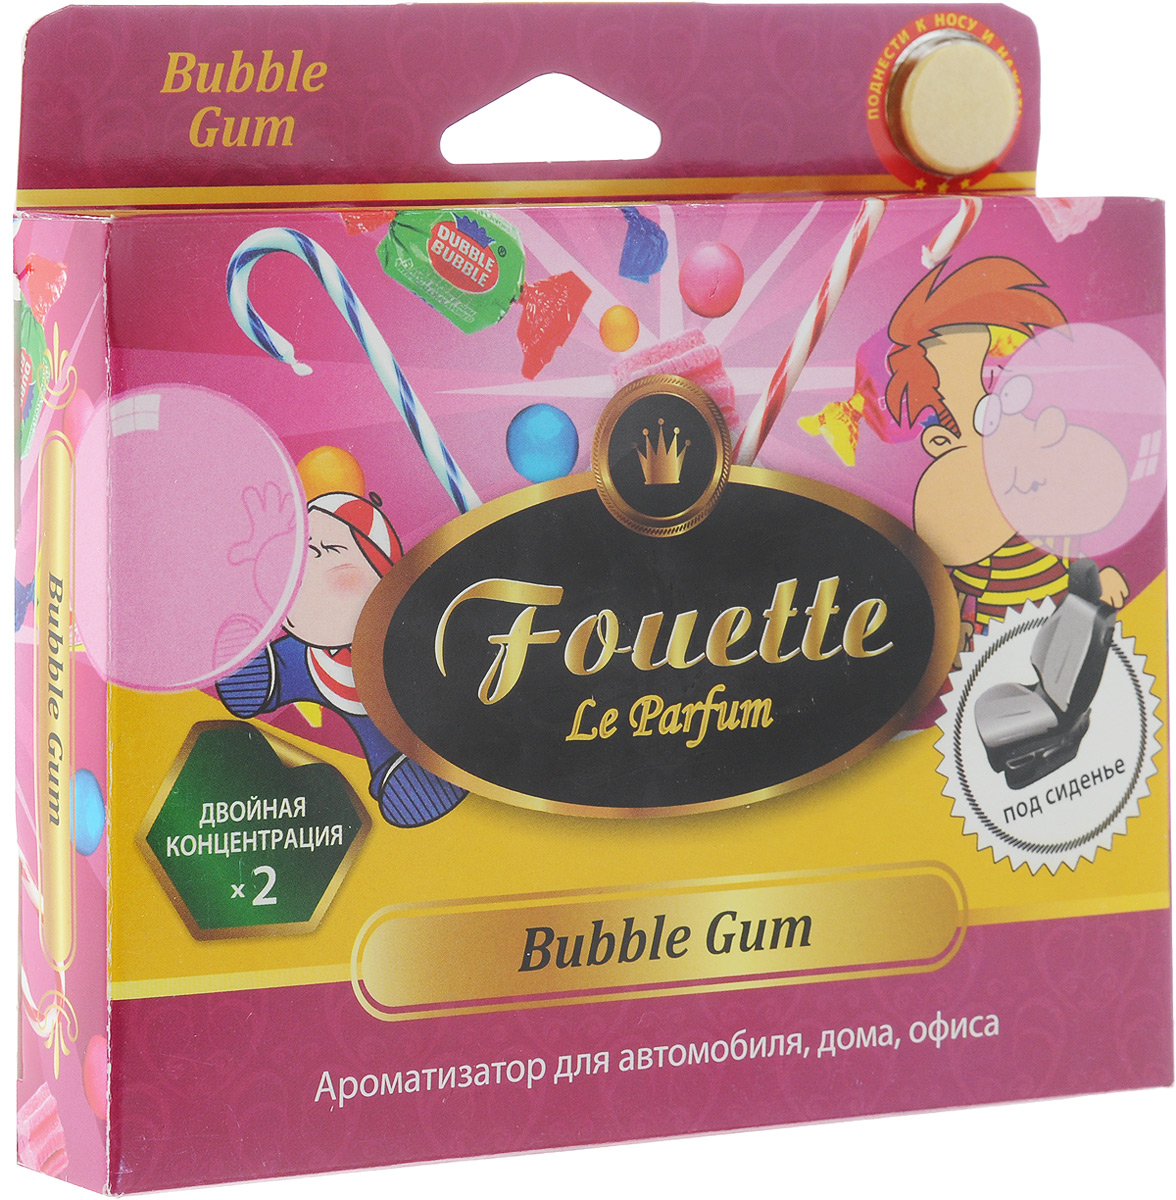 Ароматизатор для автомобиля Fouette Collection Aromatique. Bubble Gum, под сиденье, 200 г шкаф под компьютер